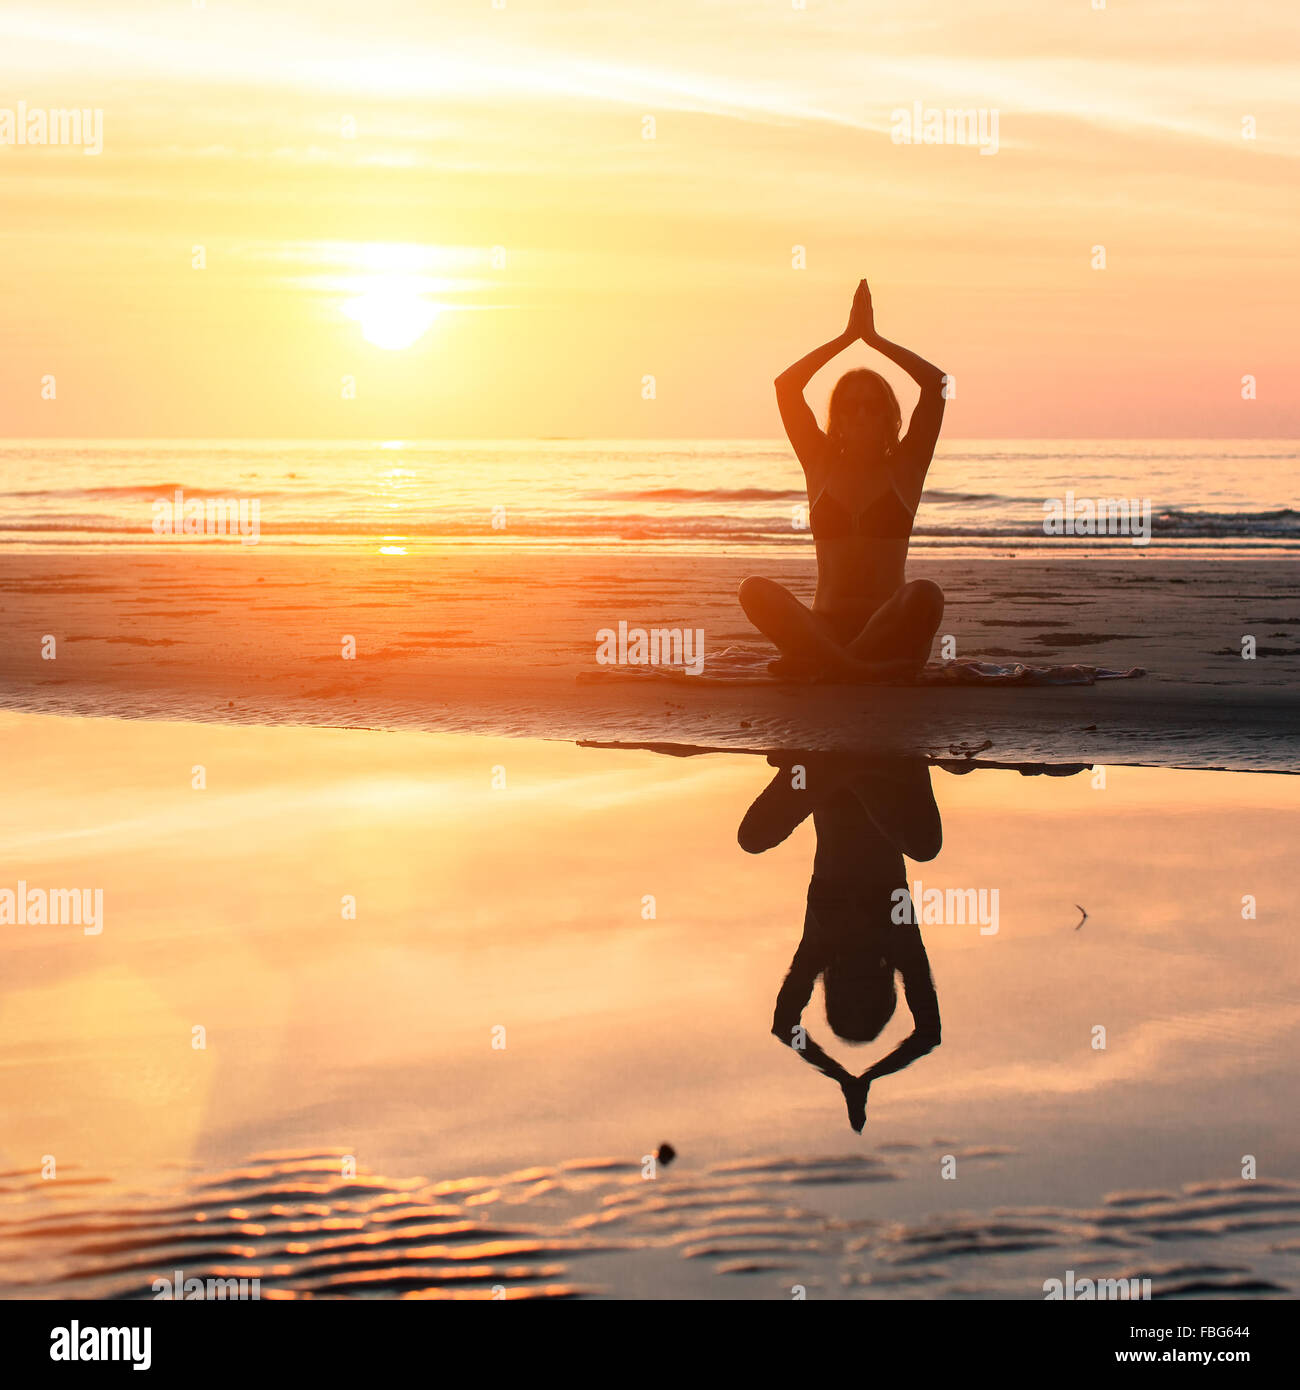 Yoga And Healthy Lifestyle Silhouette Meditation Girl On The Stock Photo Alamy